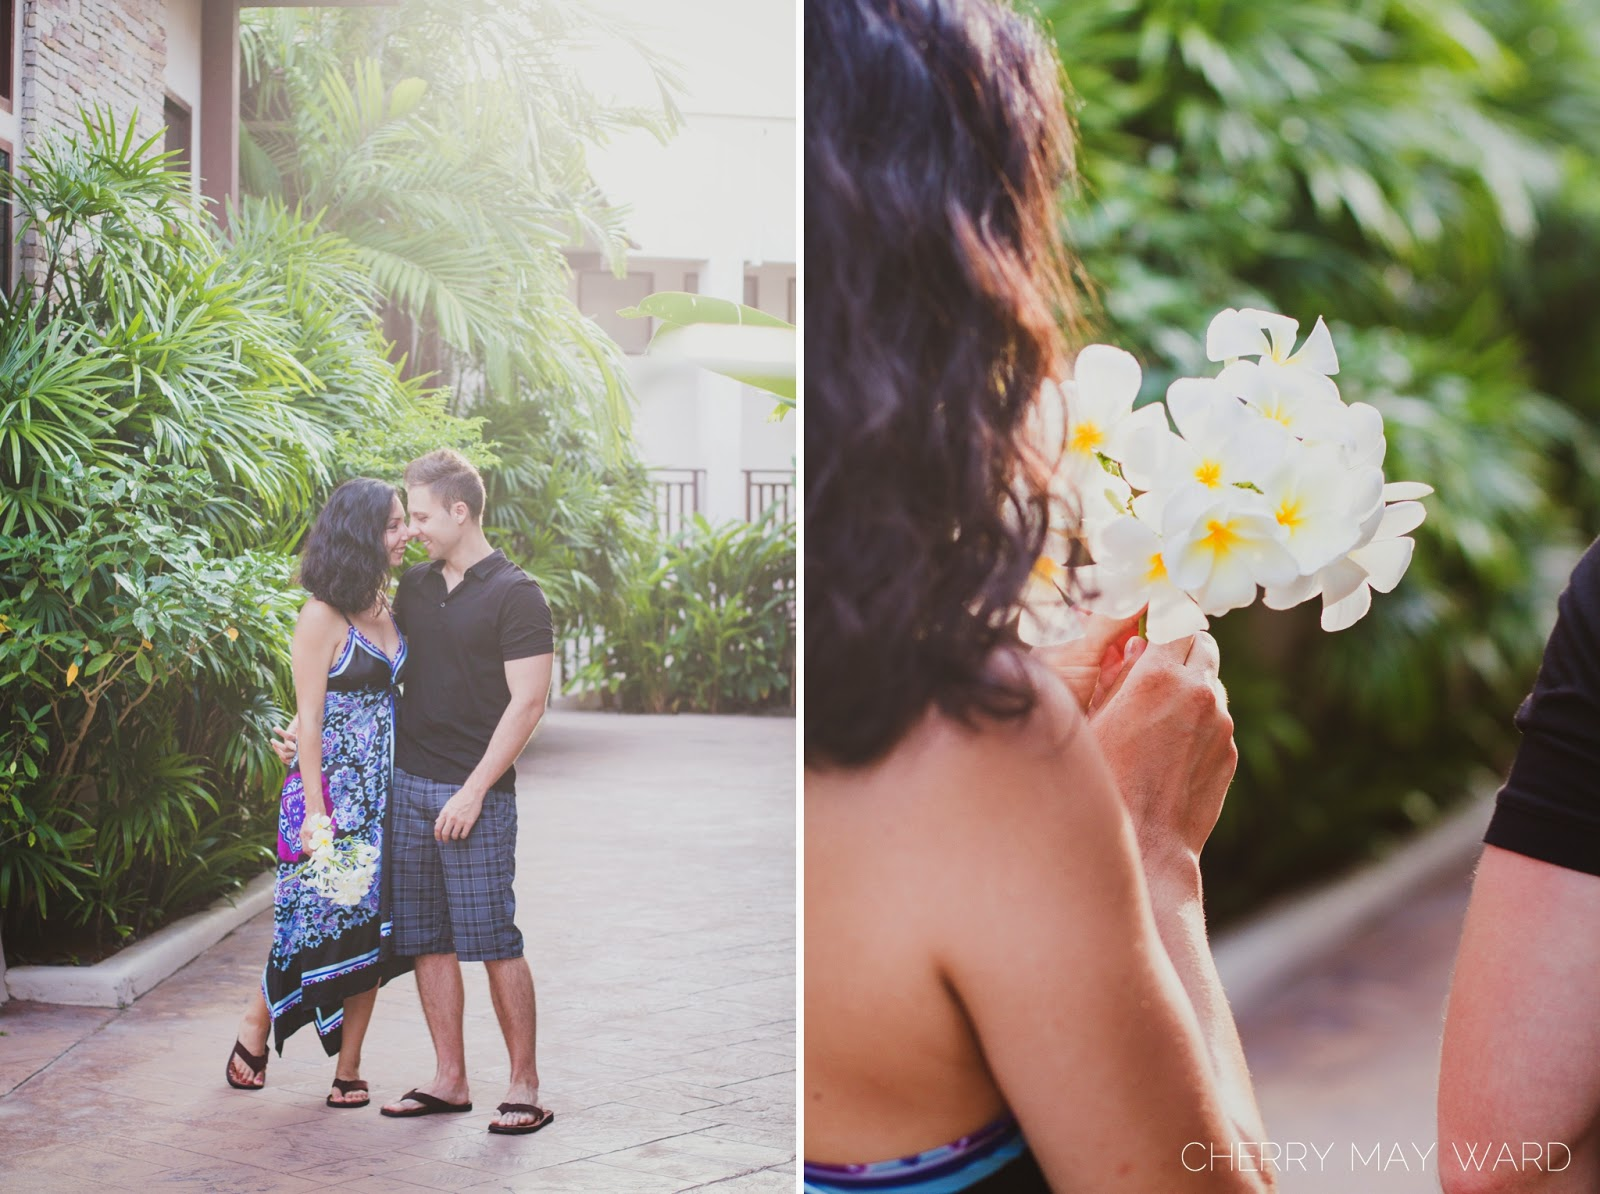 Koh Samui frangipani, smelling the frangipani on Koh Samui, beautiful frangipani, Young couple in love on Honeymoon